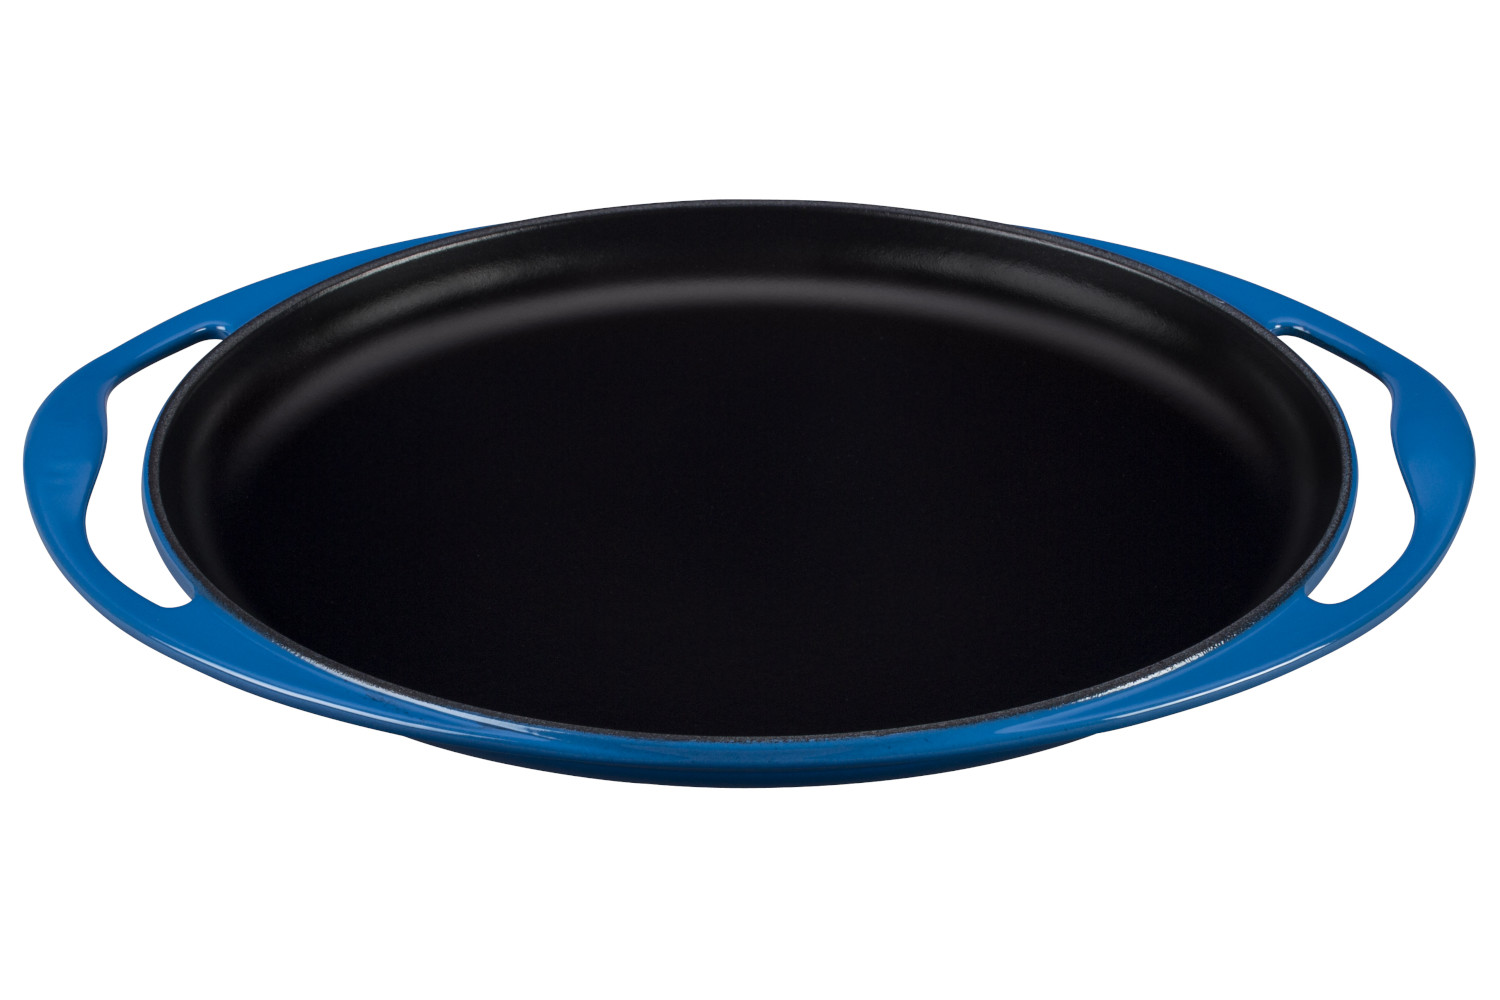 Le Creuset Enameled Cast Iron 12 1/4 inch Oval Skinny Griddle - Marseille